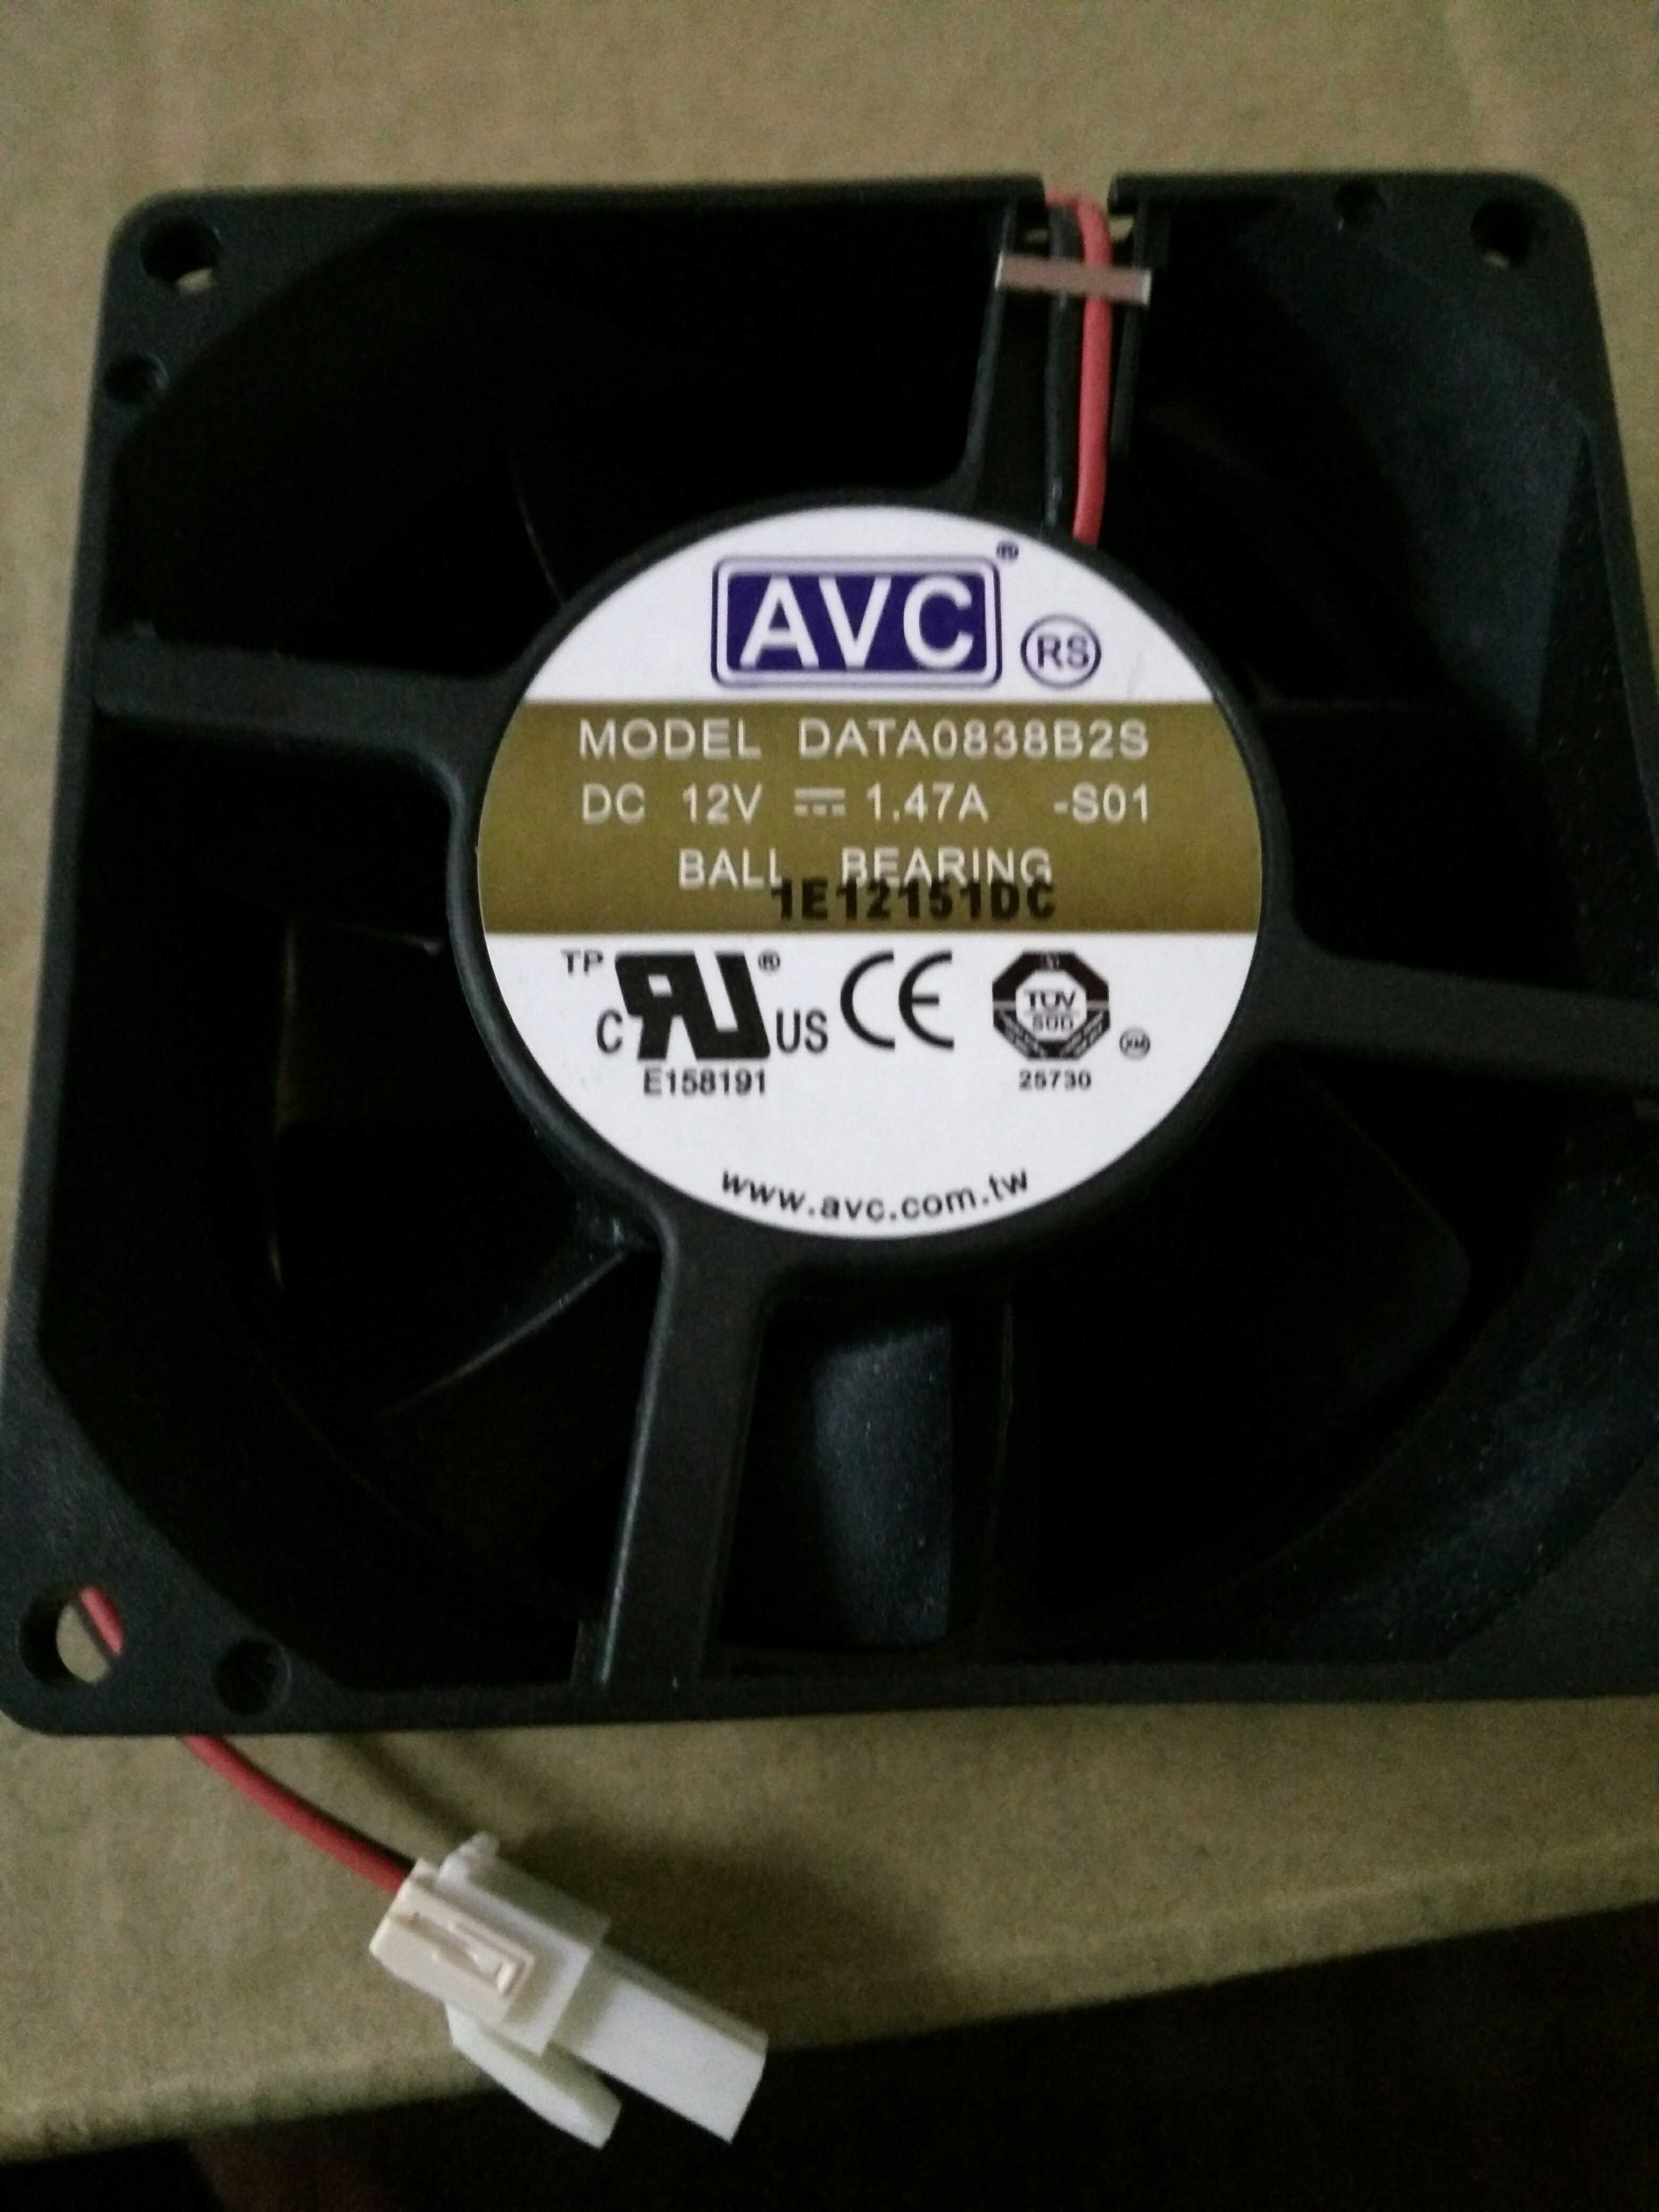 AVC DATA0838B2S 12V 1.47A 2wires cooling fan